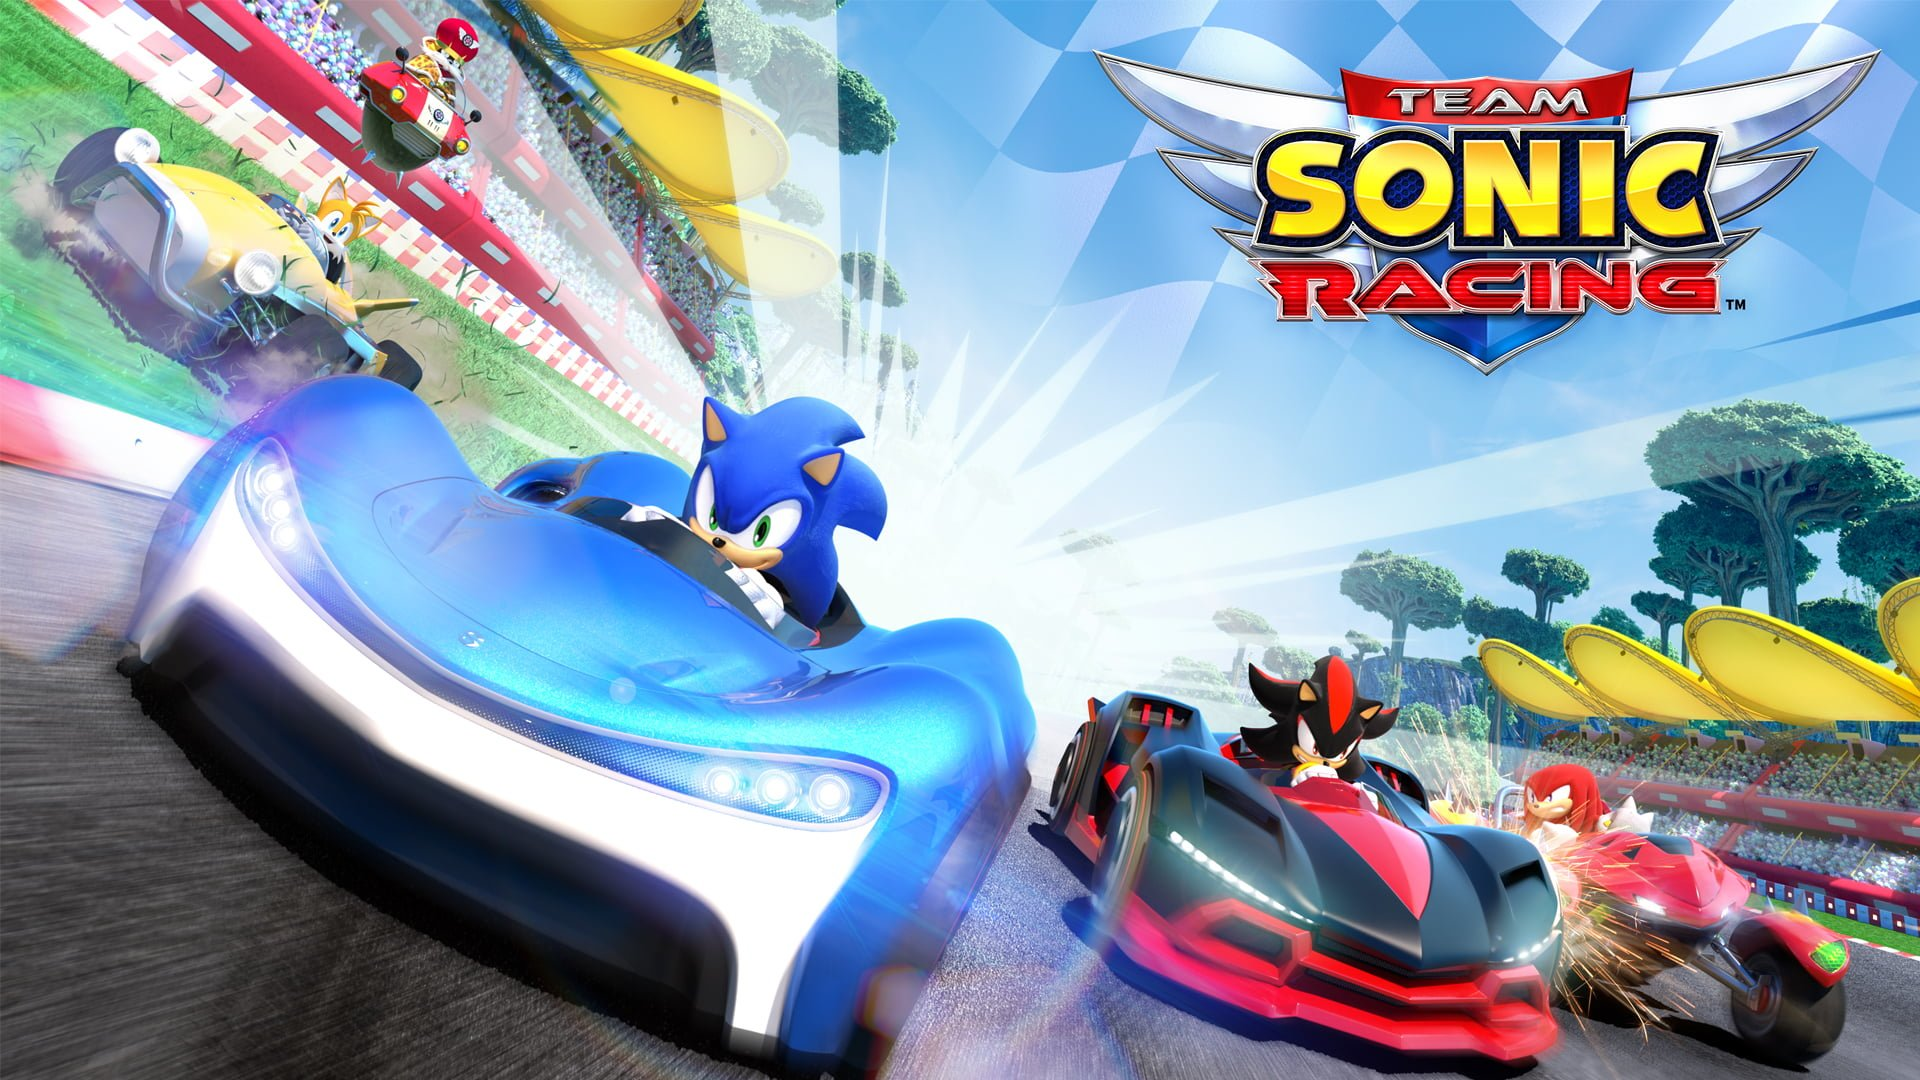 Team Sonic Racing PS4 Full Version Free Download · FrontLine